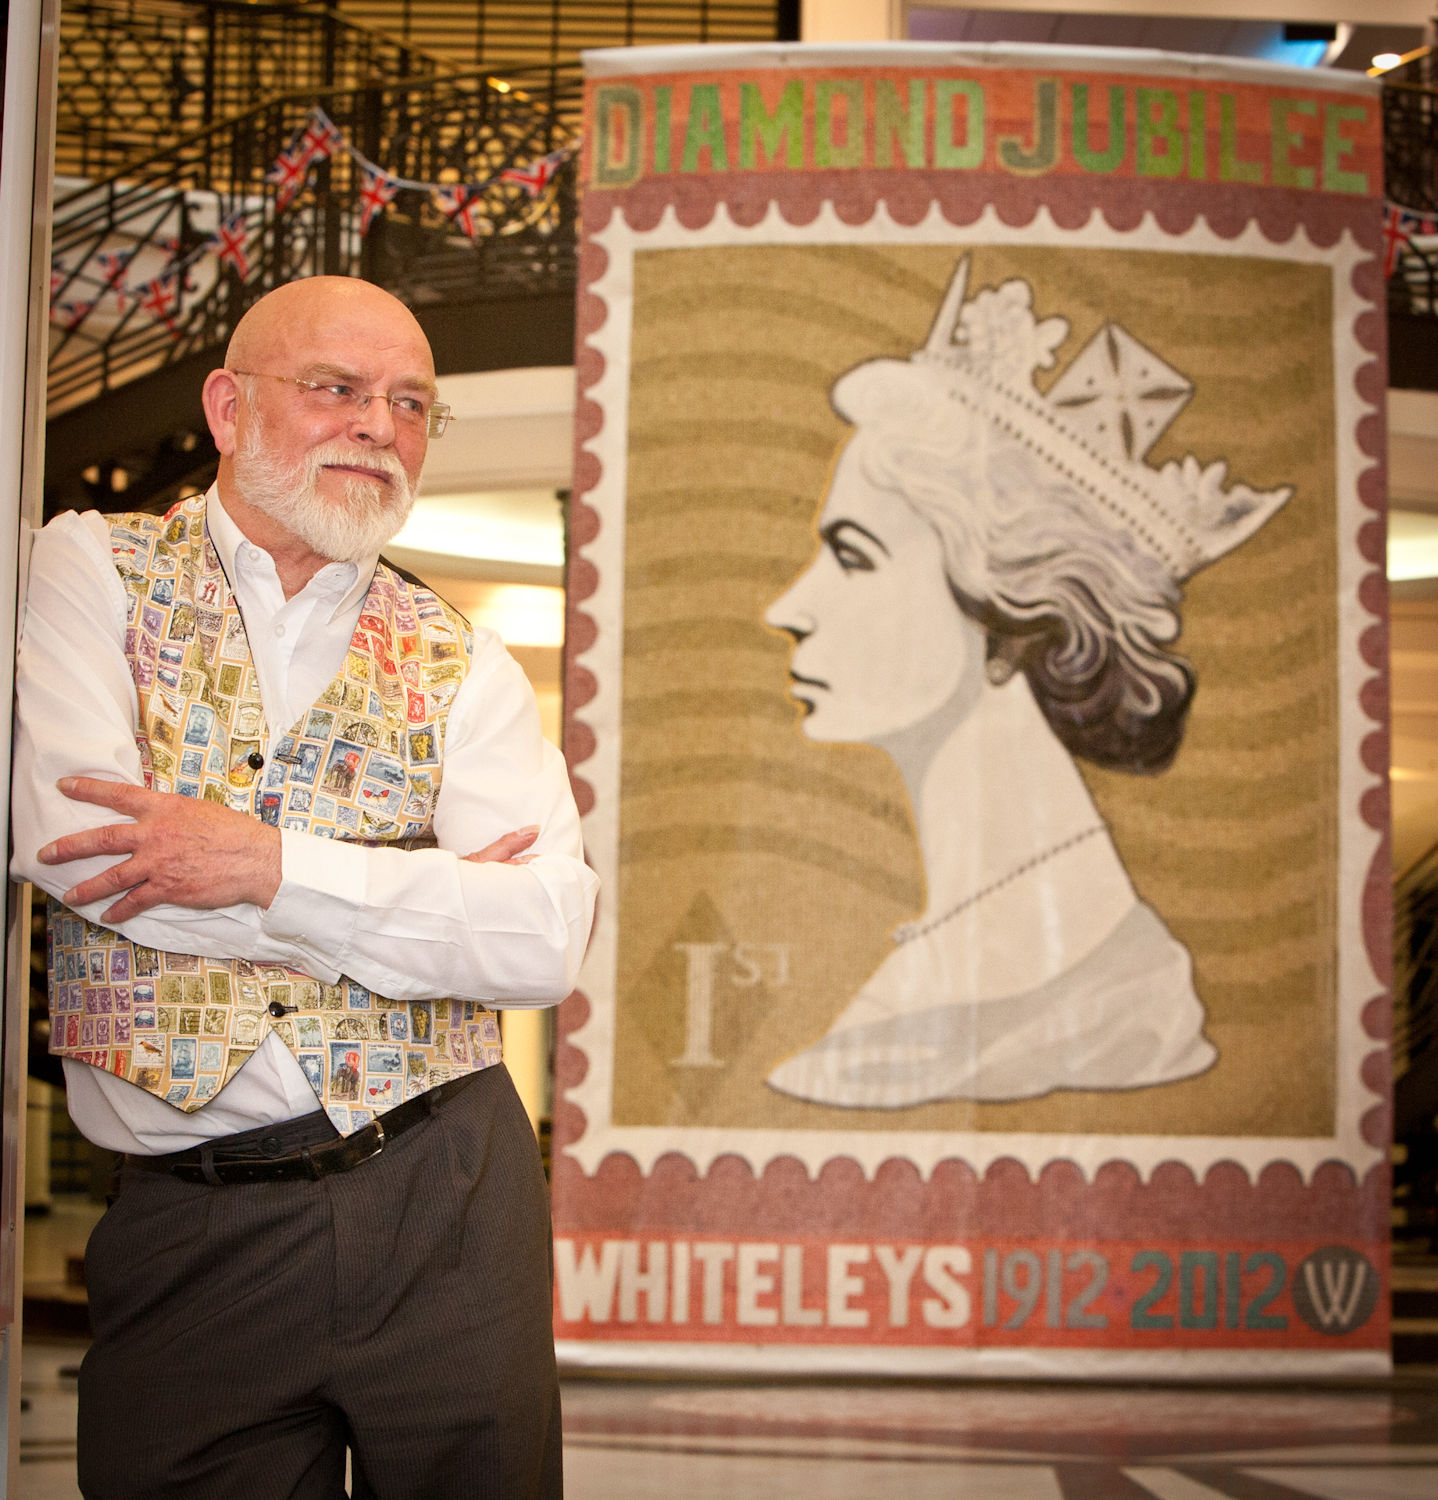 Artist Peter Mason, renowned for his portraits of A-list celebrities and politicians including Sir Cliff Richard, Simon Cowell and Margaret Thatcher, will use thousands of recycled stamps to re-create the iconic Machin Stamp portrait.   Peter, who references Pop Art and graphics in his practice, uses the stamps as pixels in a larger image. Scale is paramount in viewing and understanding Peter's work.  Peter chooses to use postage stamps and place them so that their usual significance becomes obscure, enabling the audience to see 'art' with new eyes. The artwork will take over 400 hours to complete and will be unveiled by Peter on 25 May 2012 in Whiteleys Shopping Centre atrium and will be open to the public until 28 August 2012.   Family-friendly craft workshops will be held to coincide with the exhibition on 3 June 2012. Children will be able to create their own version of the Queen's famous crown, as well as hearing a special reading of the classic children's book, The Queen's Knickers.   The Whiteleys Queen installation is unveiled on 25 May and will be available to see until 28August 2012. Please visit www.whiteleys.com for further details.     ————————————————————————— Charlotte Sluter       Sales & PR Executive Idea Generation Gallery —————————————————————————   ————————————————————————— Simon Annand: The Half. 24/02/12 – 08/04/12. More information.   Visit Idea Generation Gallery's online shop with Culturelabel.com   And proud to be supporting… SHOREDITCH FRINGE //www.shoreditchfringe.org   ——————————————————— T.   +44 (0)20 7749 6850 M:  +44 (0)78 149 75721 F.   +44 (0)20 7729 0513 Website: http://gallery.ideageneration.co.uk/ Twitter: @IG_Gallery Facebook: http://www.facebook.com/IdeaGenerationGallery   Idea Generation Gallery 11 Chance Street London E2 7JB